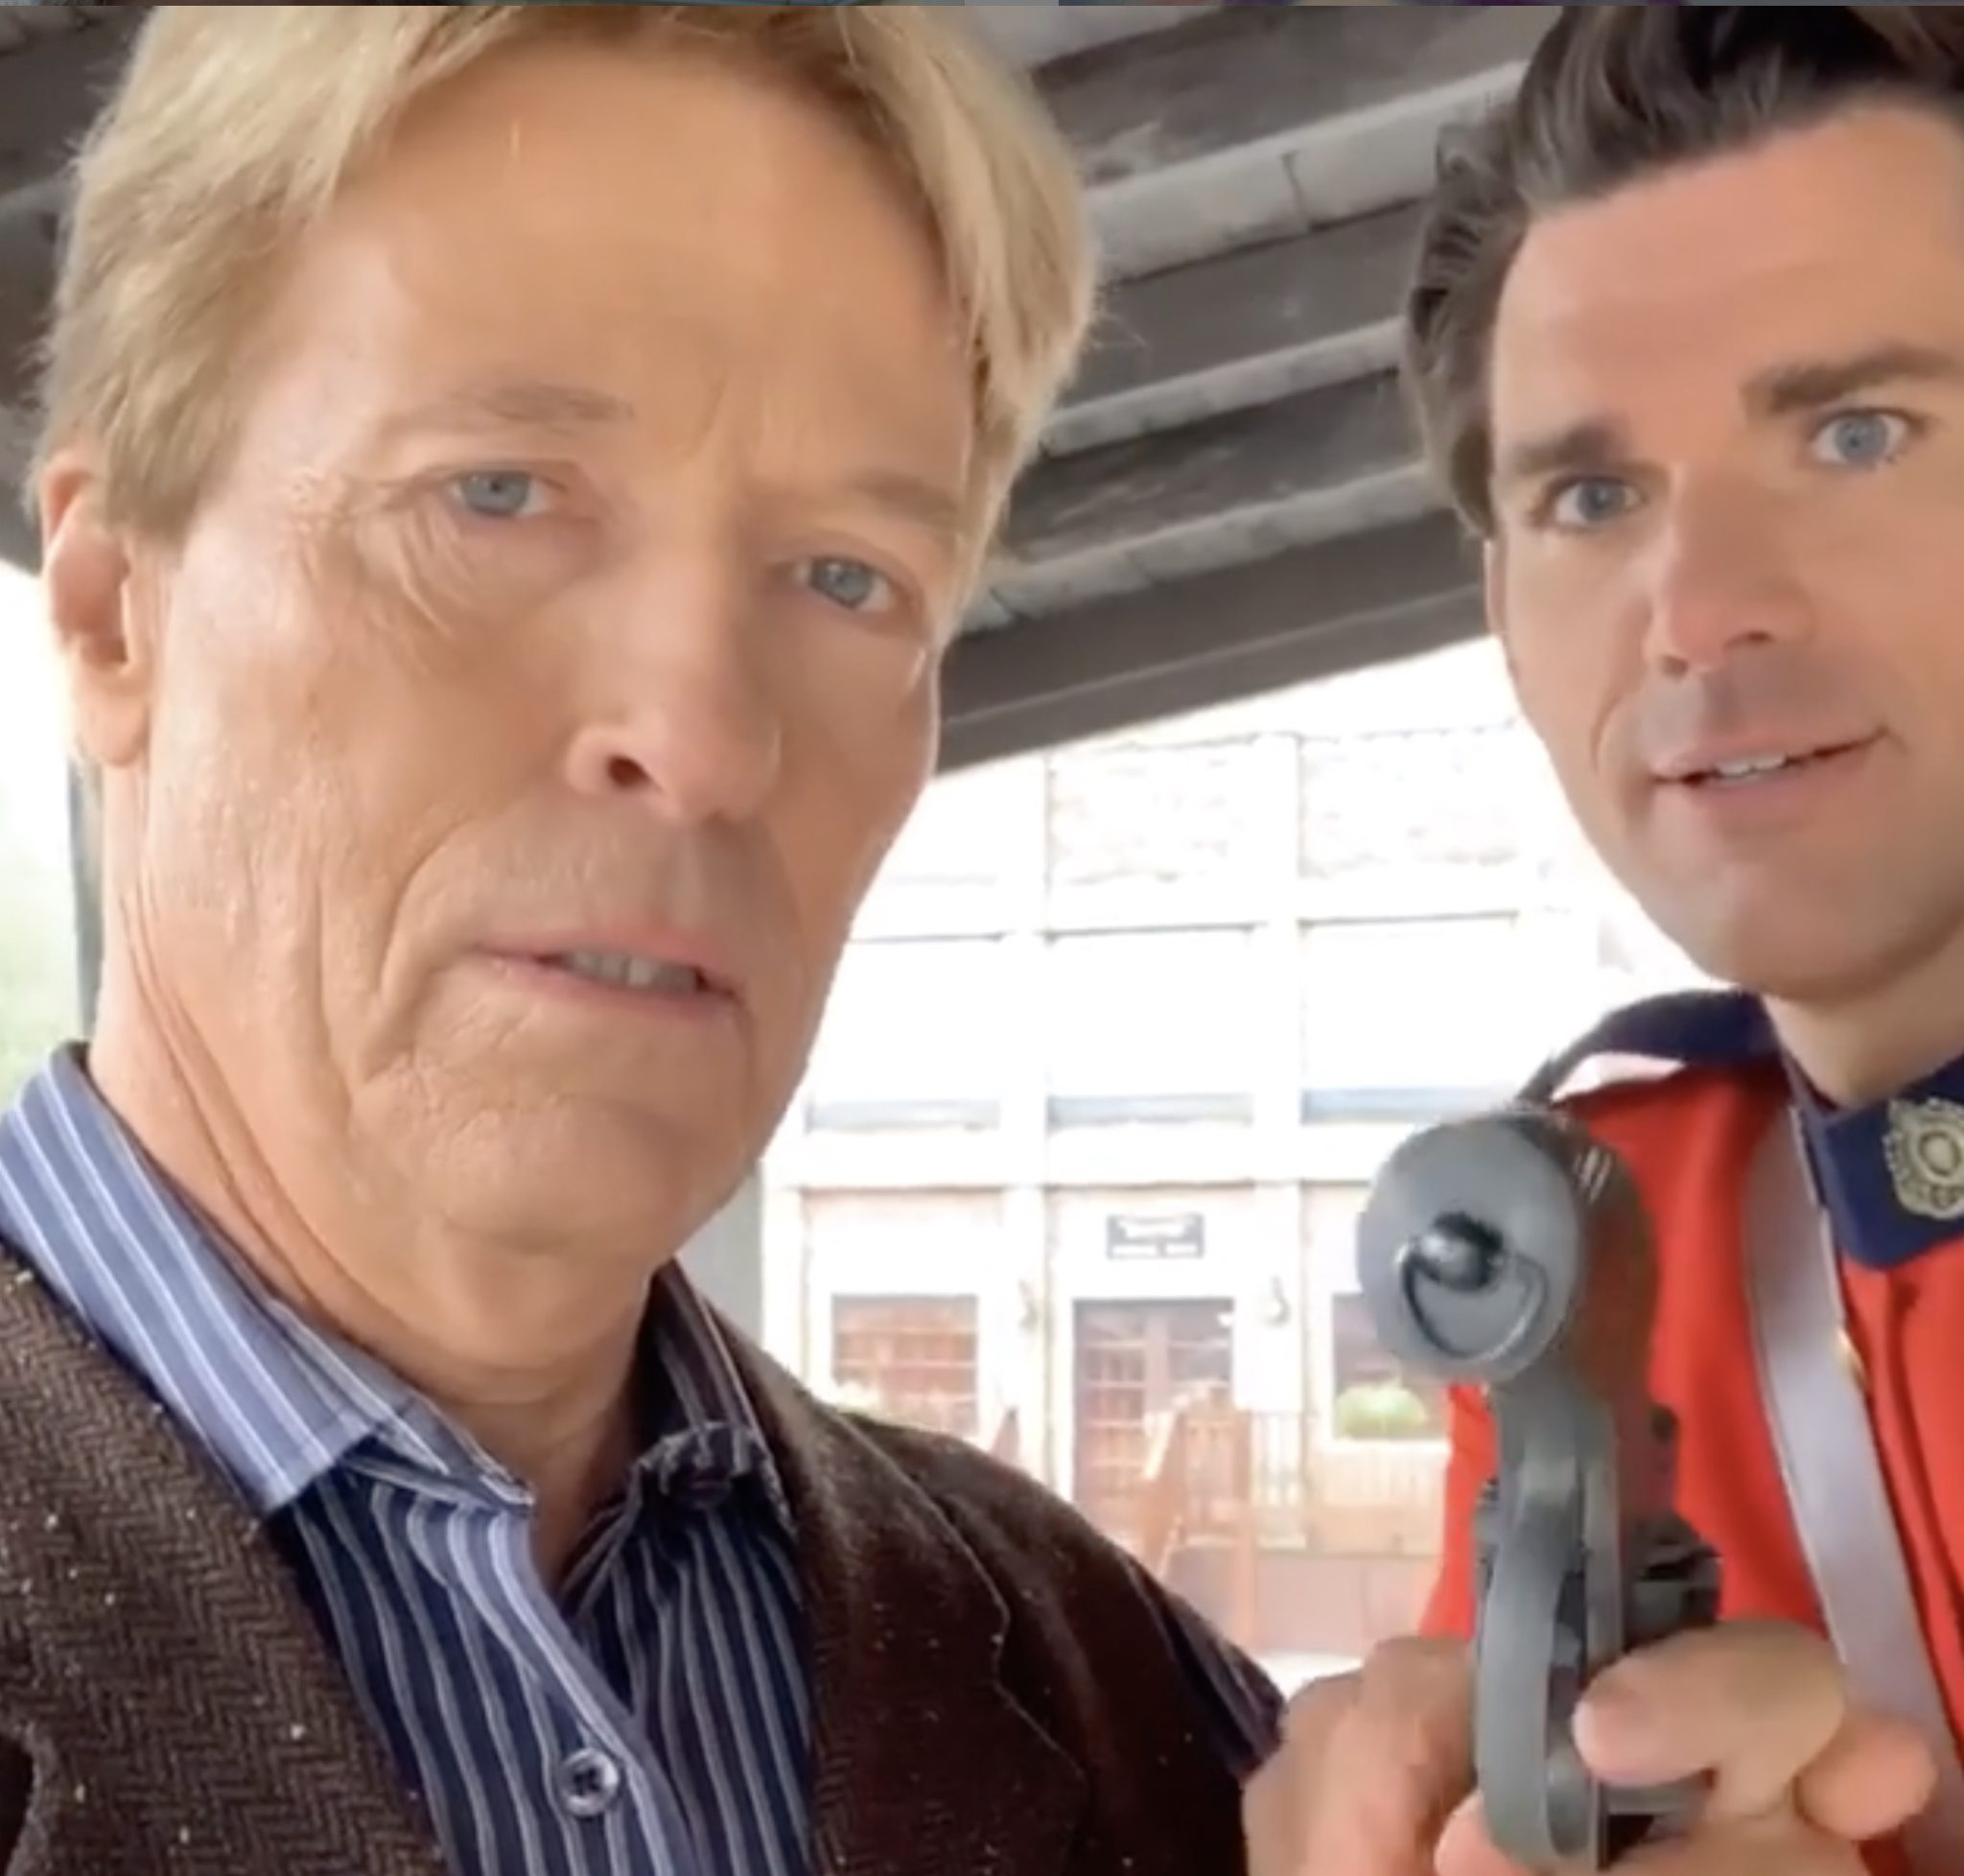 Jack Wagner, Bill Avery, Kevin McGarry, Nathan Grant, WCTH-https://www.instagram.com/p/B2hW7VoJWRh/